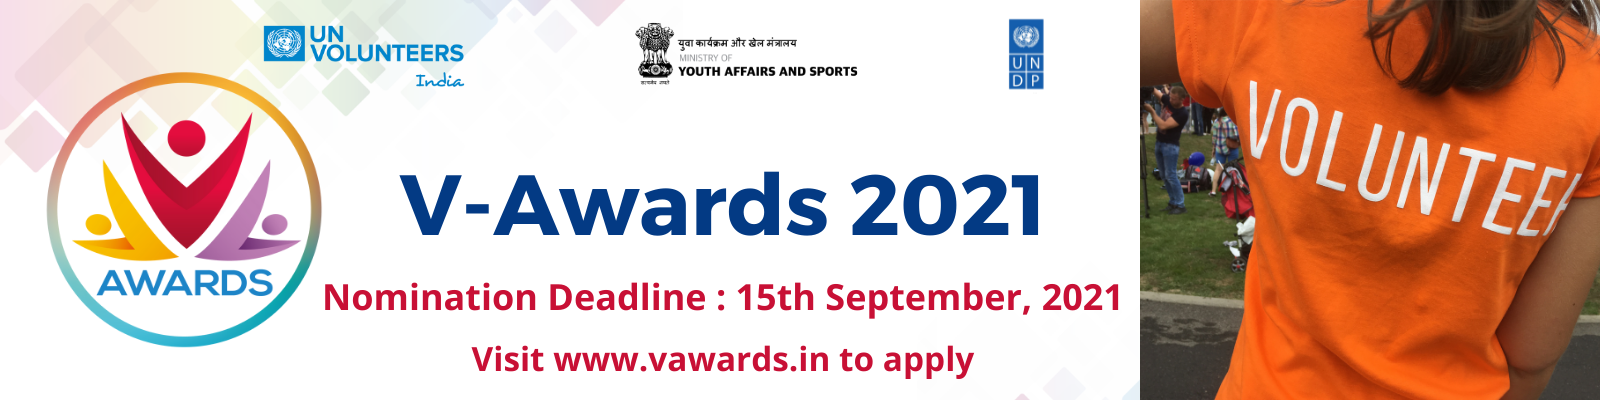 UNV India launched V-Awards in 2018 and has acknowledged the journey of impact of 30 individuals who have volunteered  to tackle some of the key/major development challenges like gender, environment, education, social inclusion and many other thematic areas in India. It is a journey that recognizes efforts that brought a positive change in the surroundings and led a step forward to ensure a better state of living in any developmental aspect. The Awardees will be conferred on International Volunteer Day, 5 December 2021.  Visit www.vawards.in for more information.